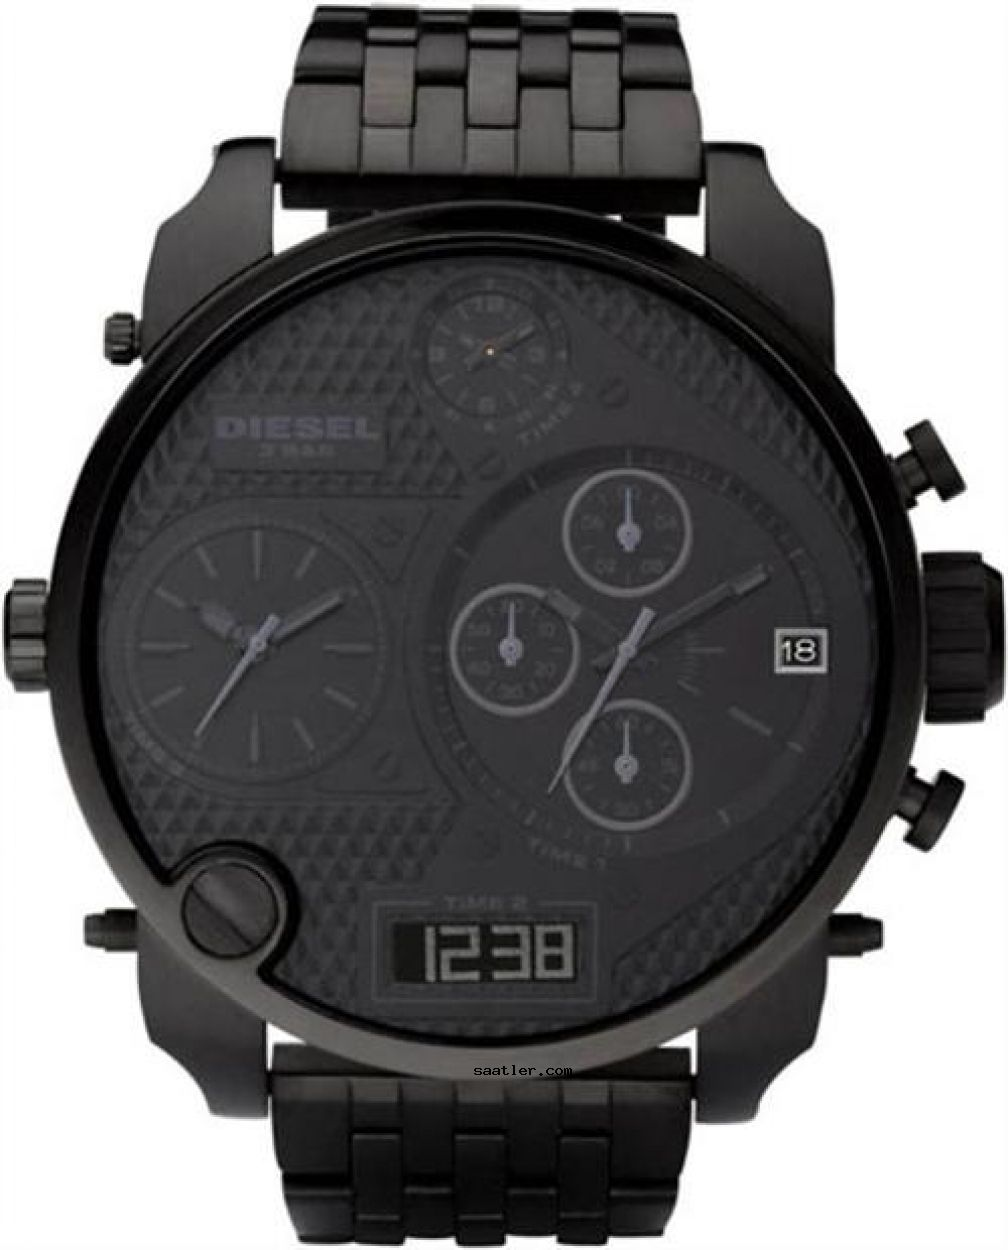 Pin By Saatler Com On Diesel Oversized Watches Diesel Watch Watches For Men